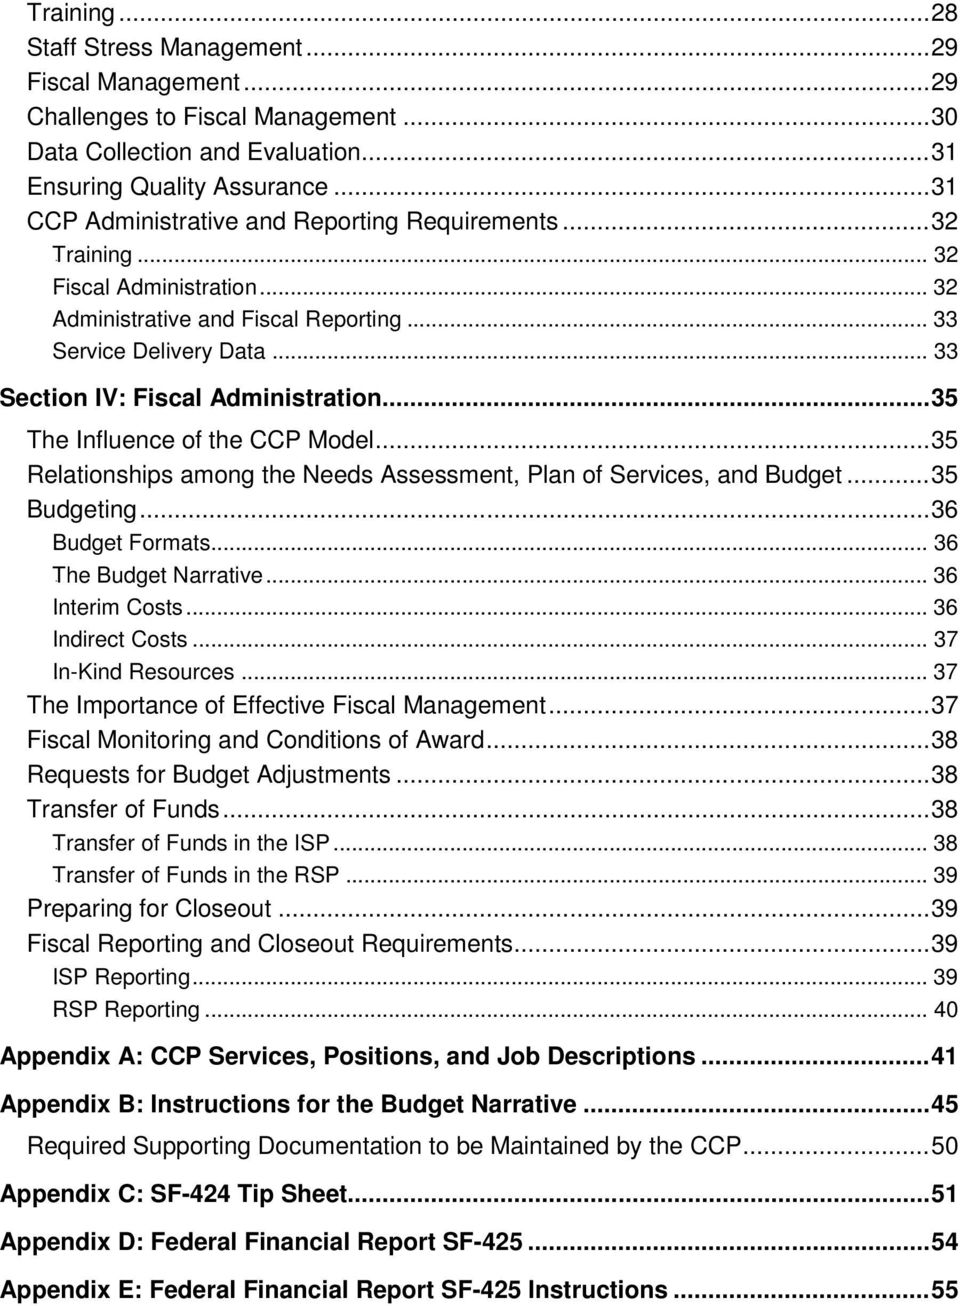 .. 33 Section IV: Fiscal Administration... 35 The Influence of the CCP Model... 35 Relationships among the Needs Assessment, Plan of Services, and Budget... 35 Budgeting... 36 8Budget Formats.